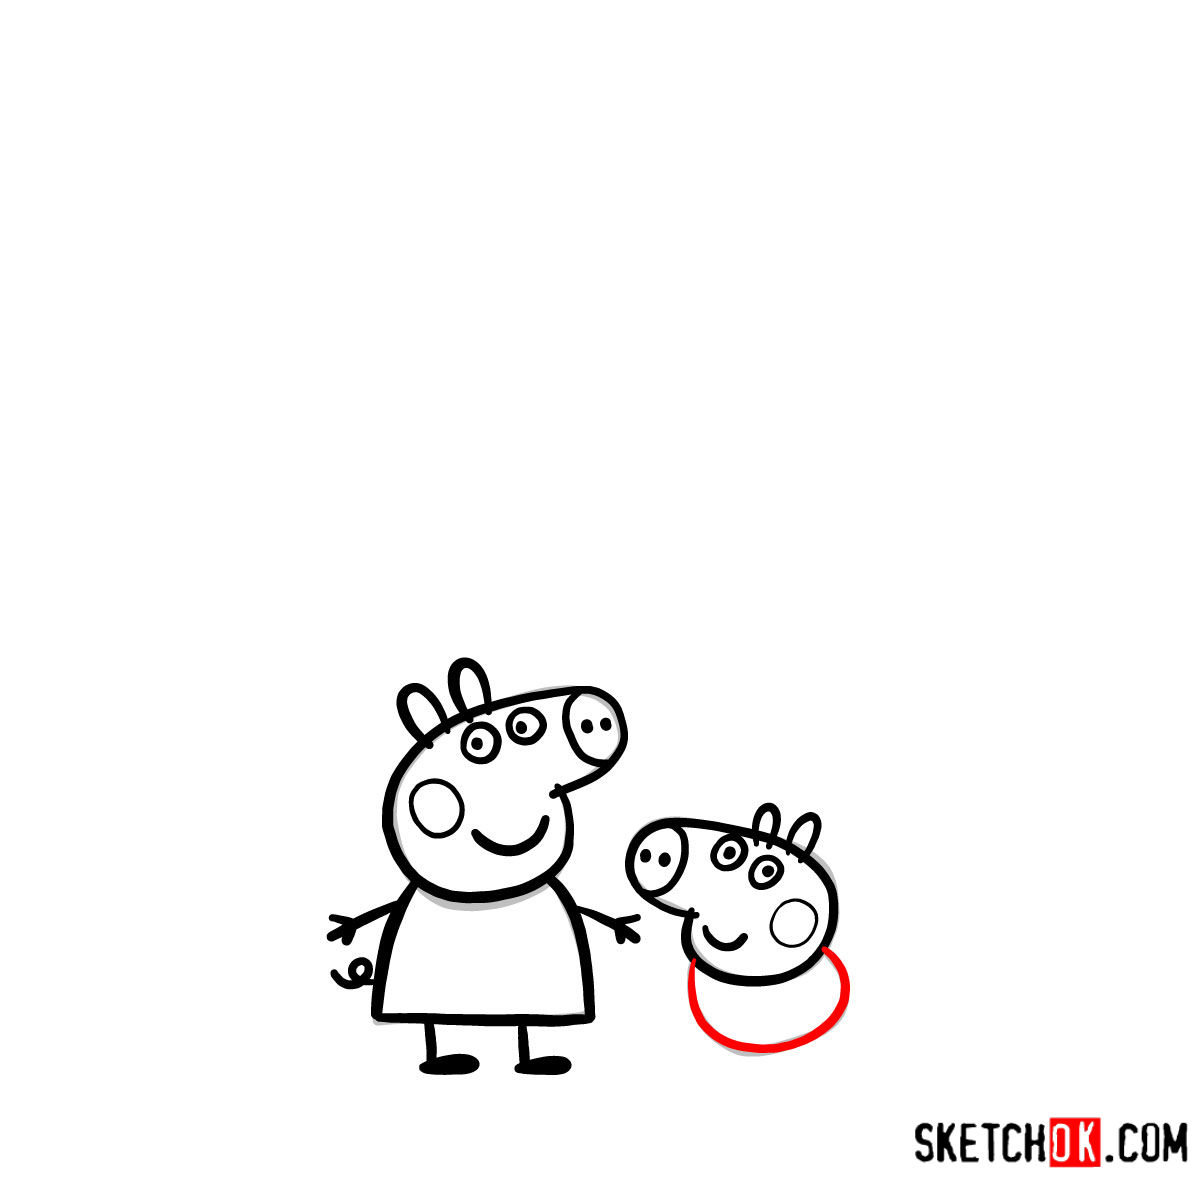 How to draw Peppa Pig's family - step 09